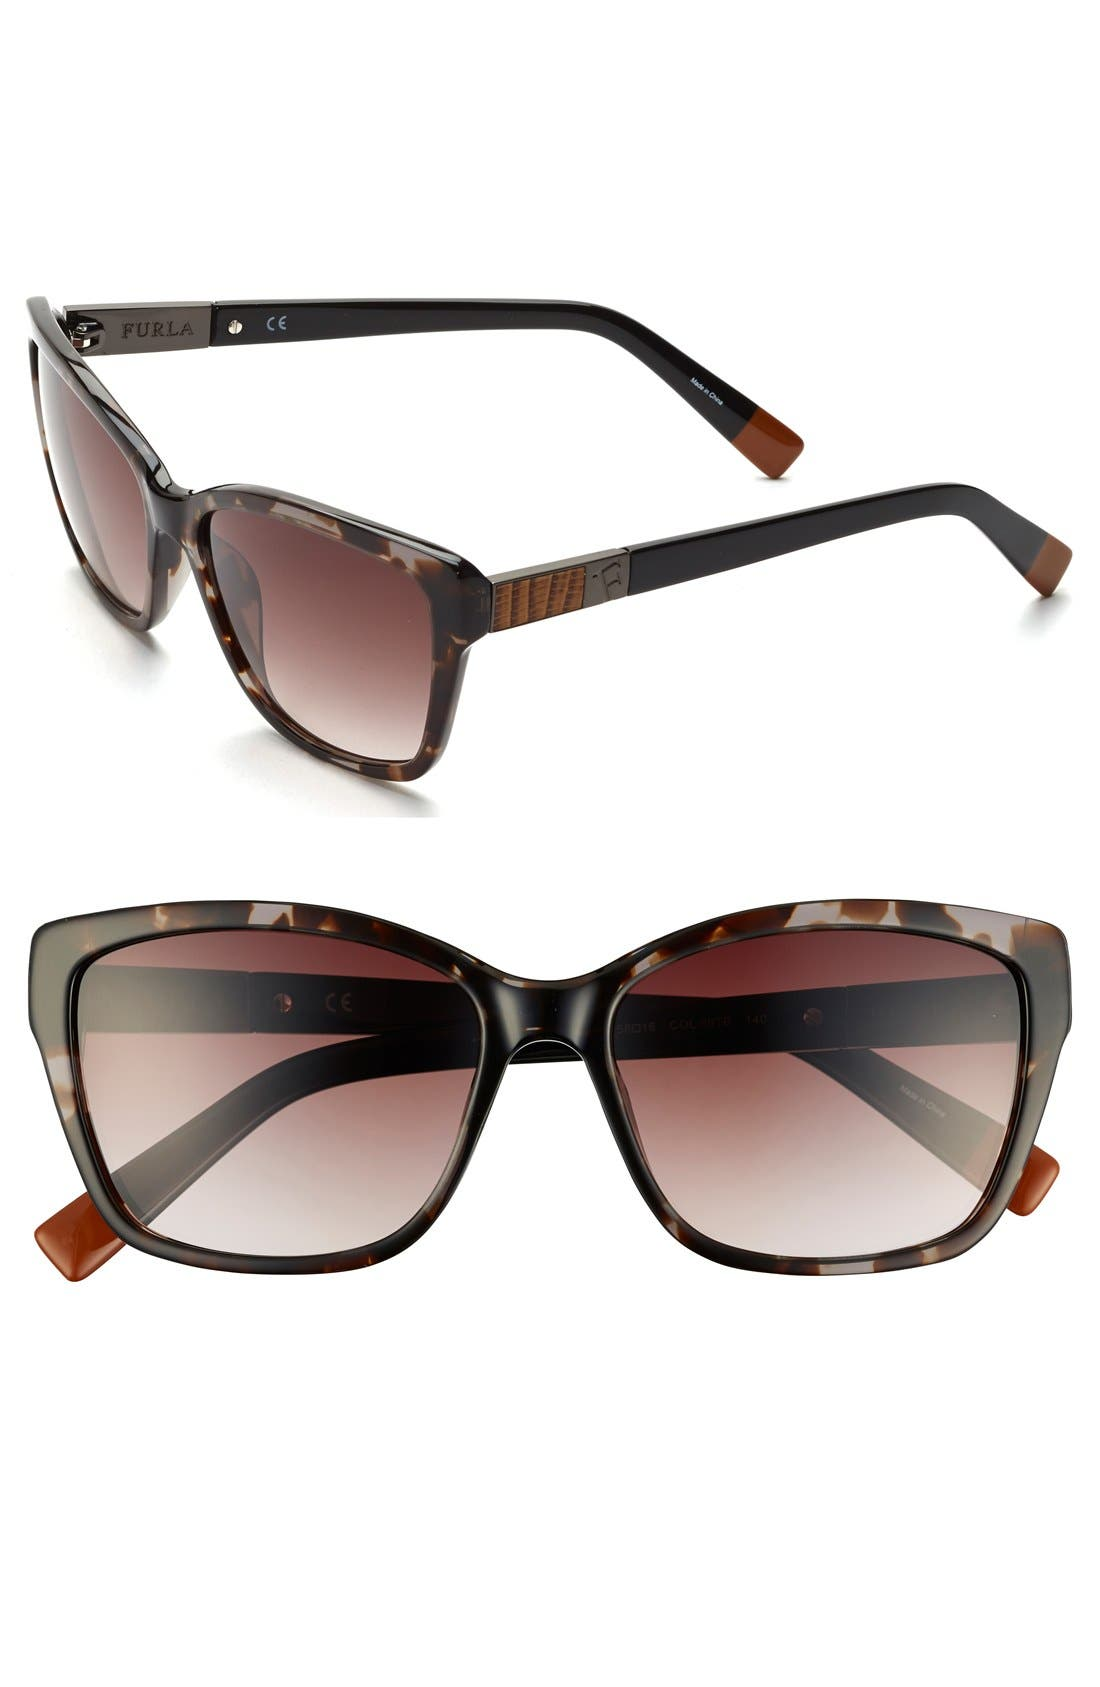 Alternate Image 1 Selected - Furla 56mm Leather Insert Sunglasses